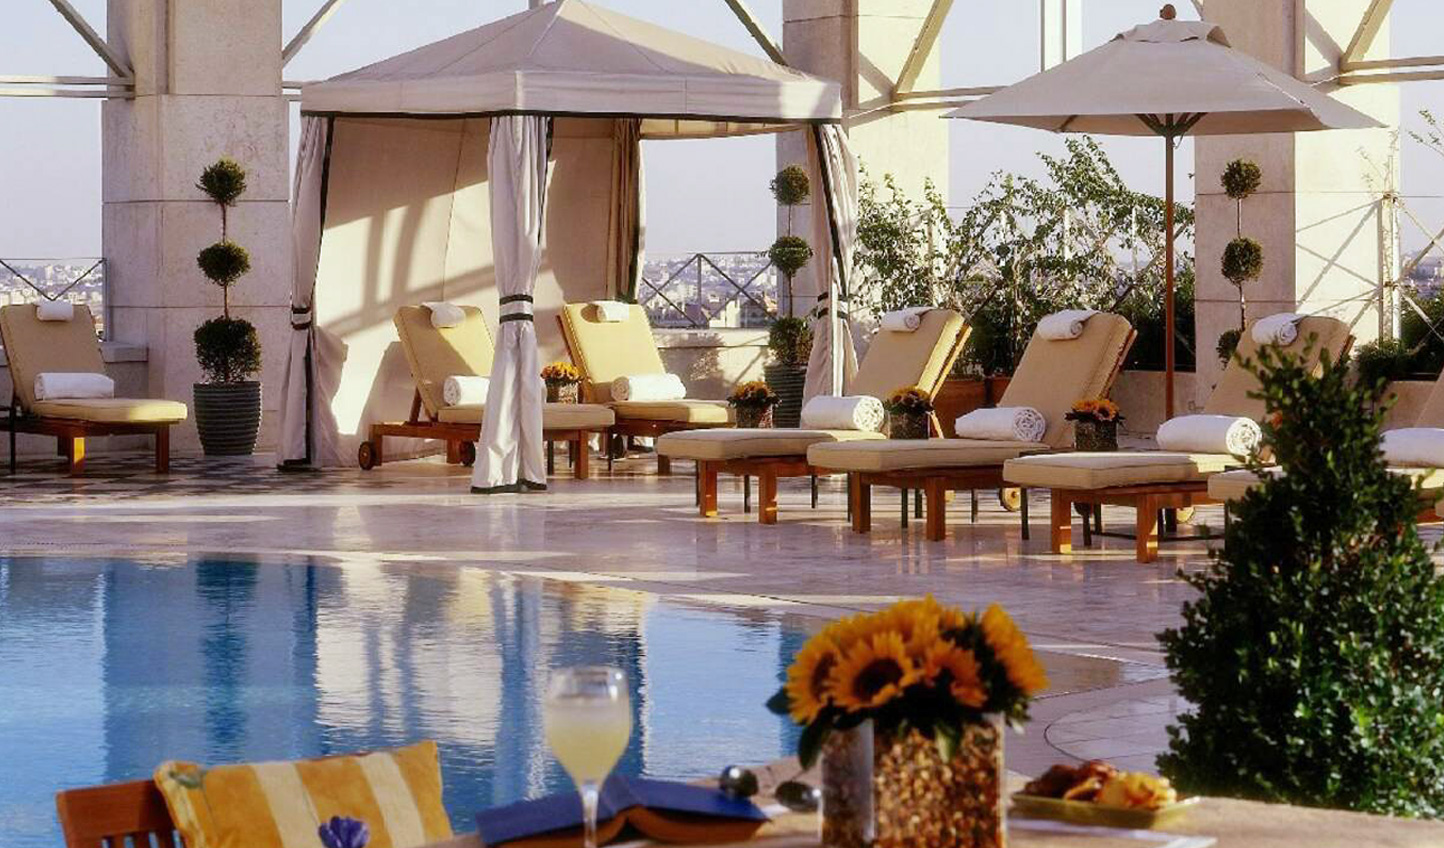 Let hours pass you by as you relax poolside on the skydeck in the heart of the capital